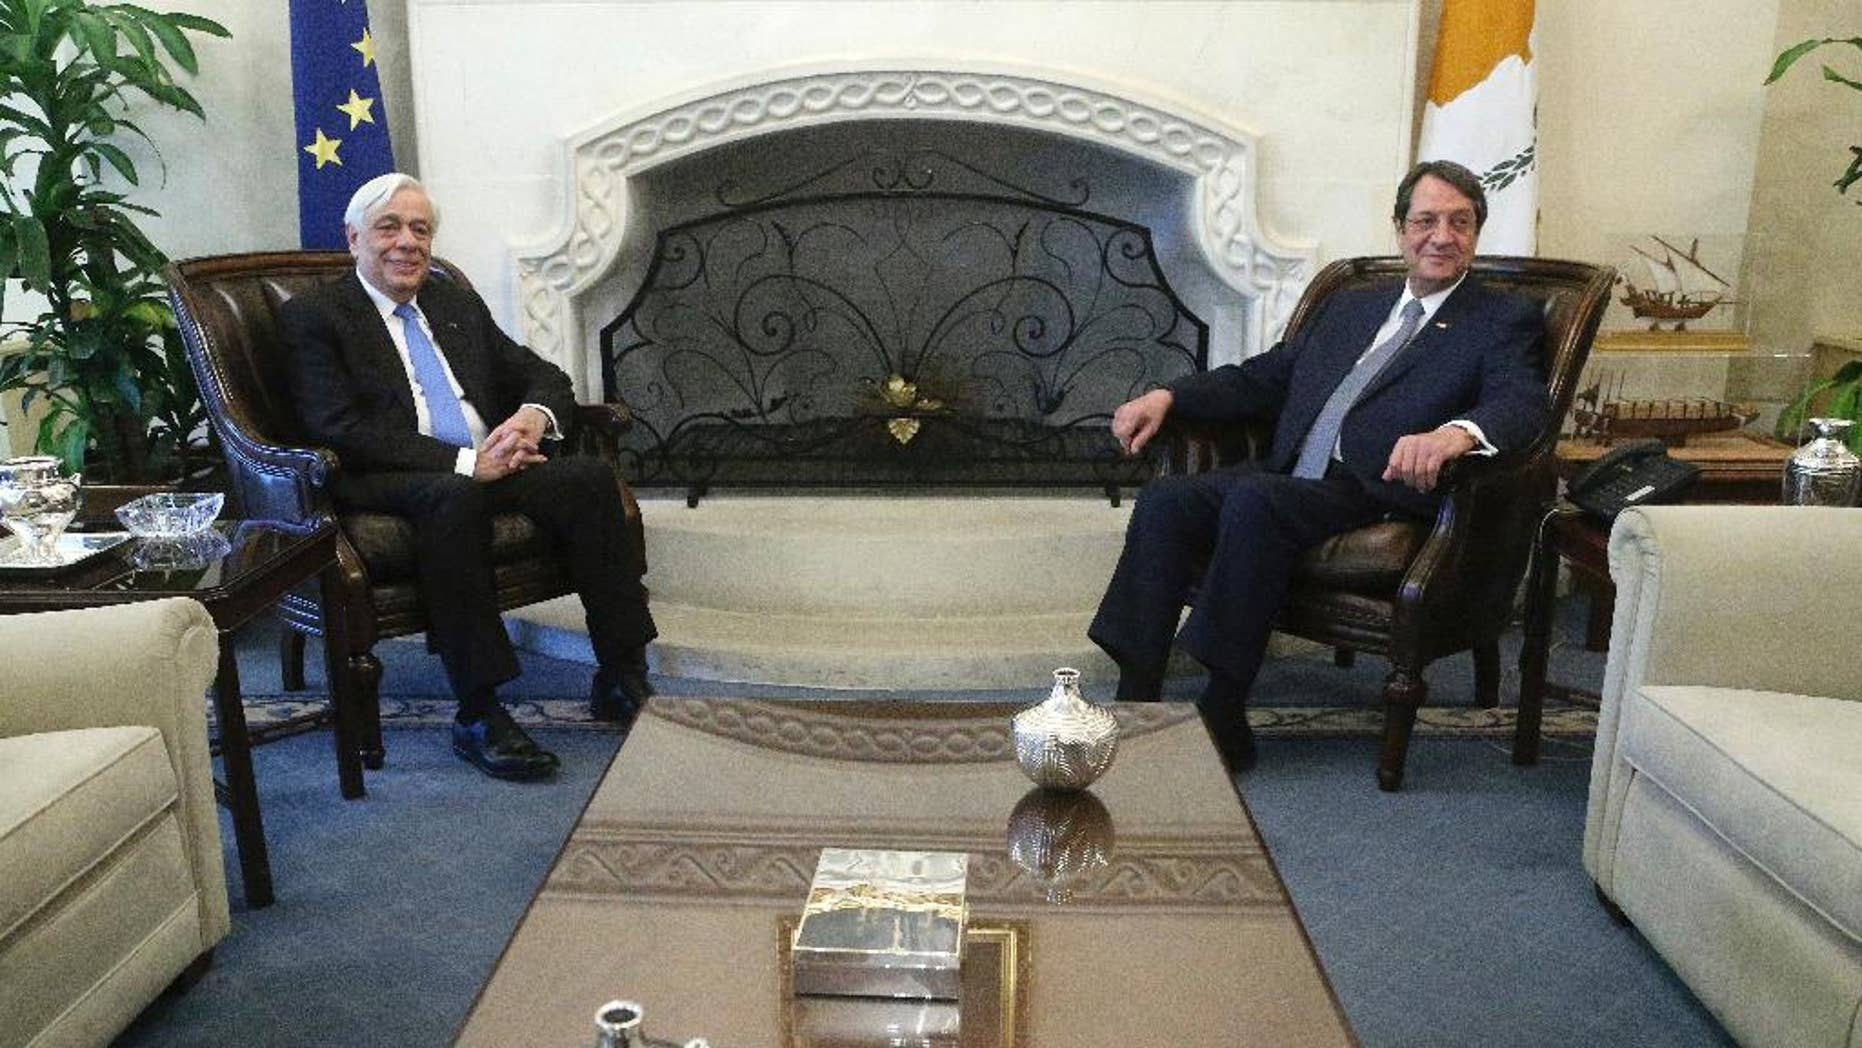 Cypriot President Nikos Anastasiades, right, and Greek President Prokopis Pavlopoulos pose for photographers prior to their meeting at the presidential palace in Nicosia in the eastern Mediterranean island of Cyprus, Thursday, Jan. 19, 2017. Pavlopoulos is in Cyprus for a one-day visit. (AP Photo/Petros Karadjias)